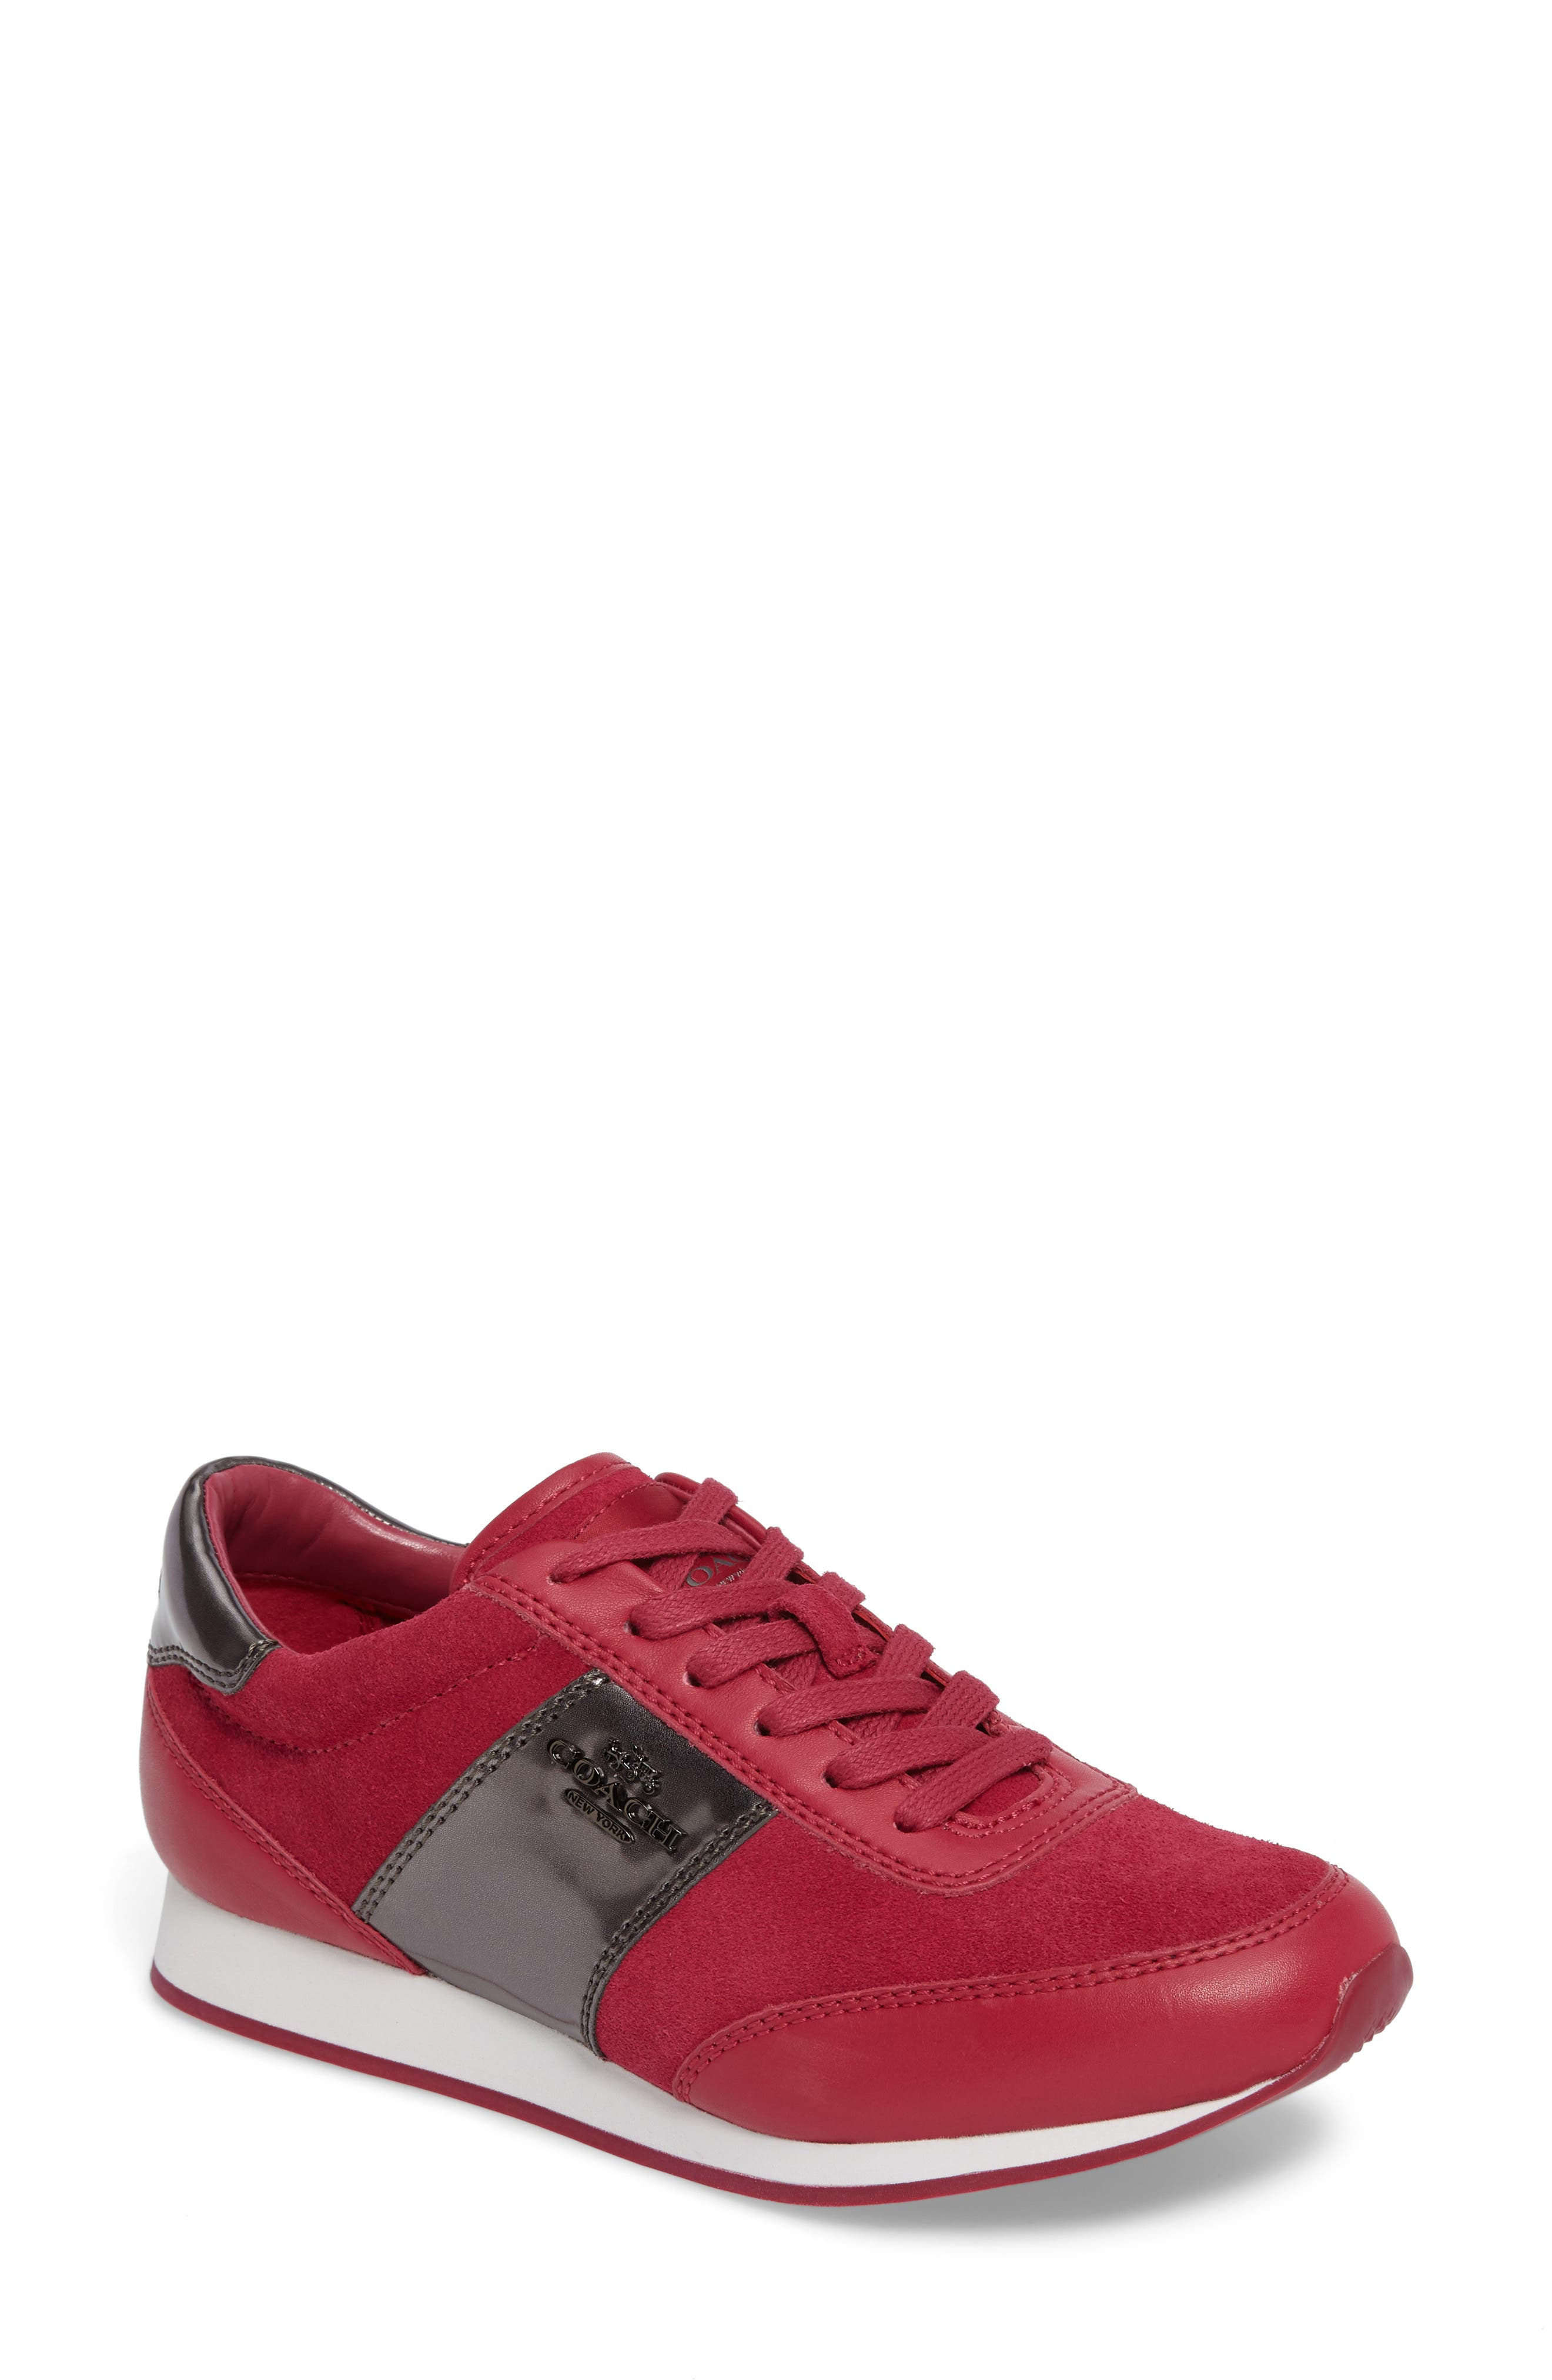 Main Image - COACH 'Raylen' Leather Sneaker